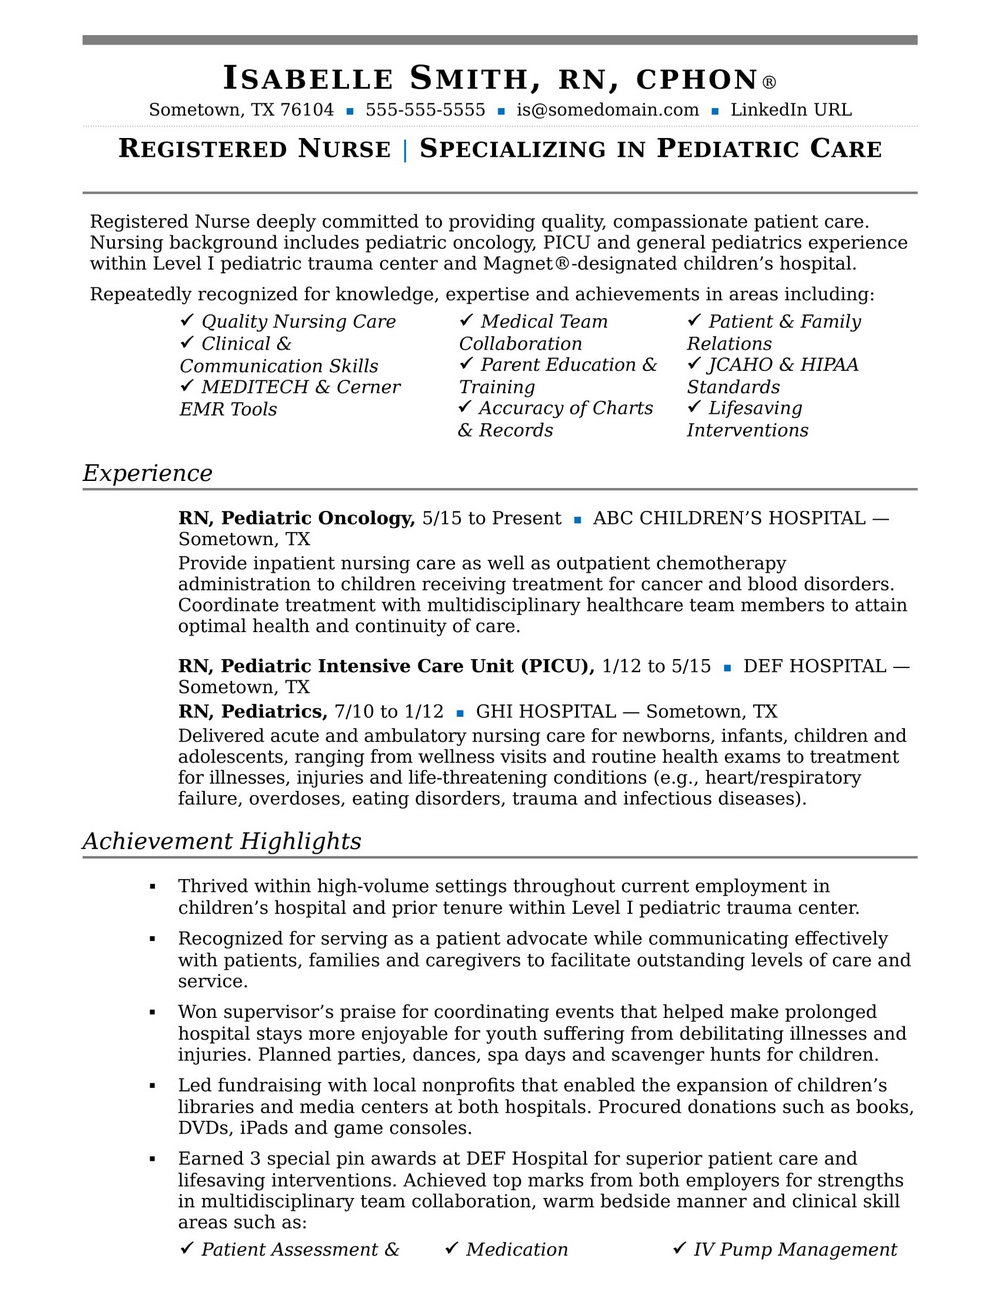 Australian Registered Nurse Resume Sample